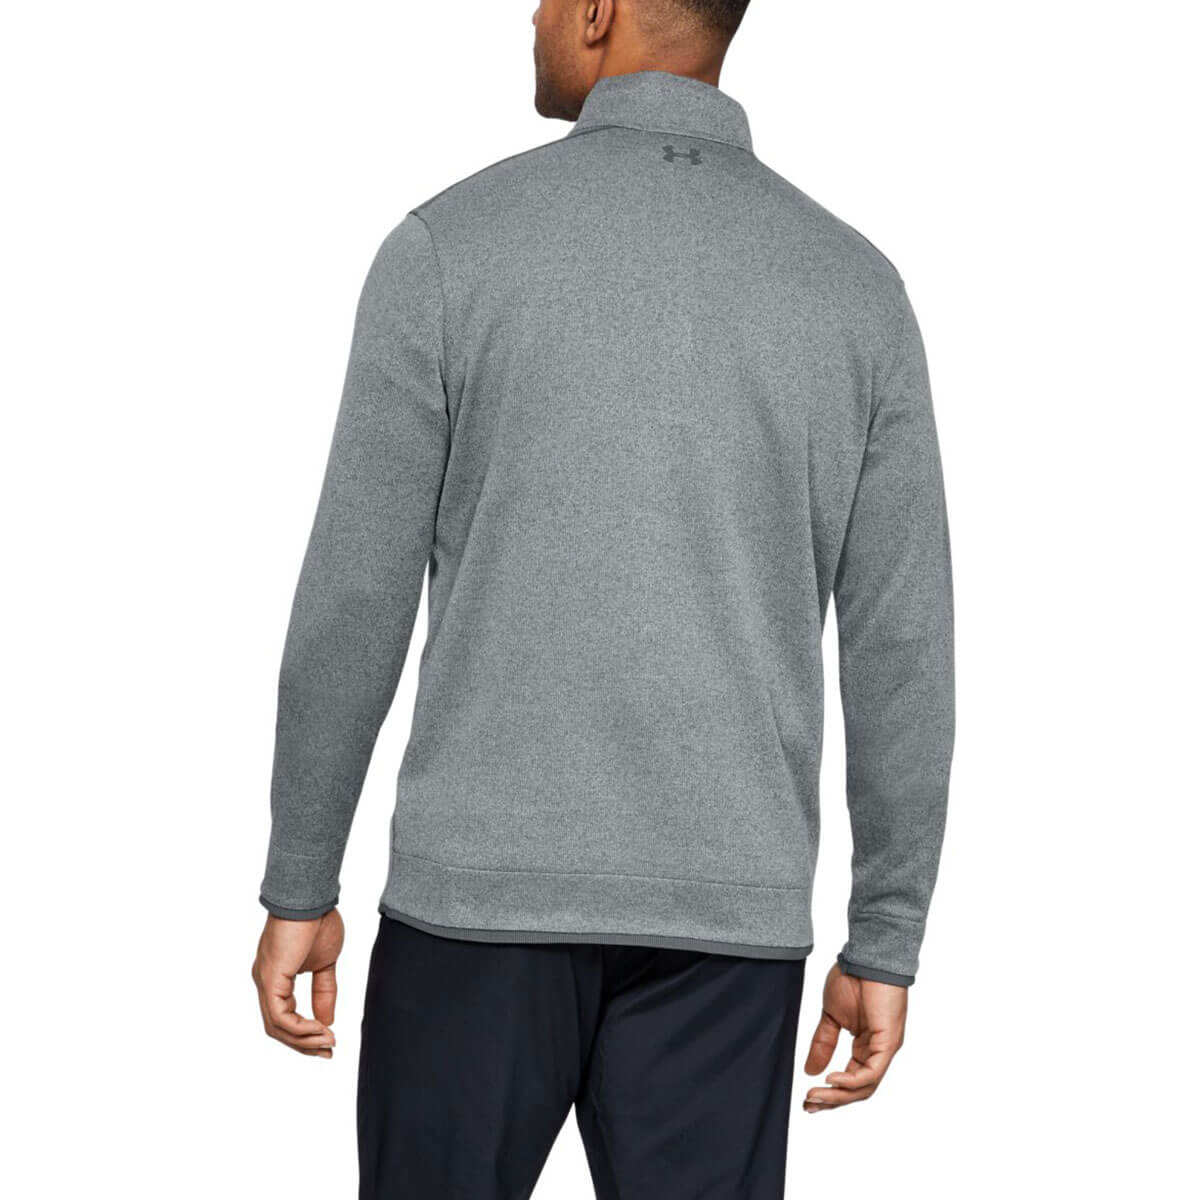 Under-Armour-Homme-UA-sweaterfleece-1-2-zip-resistant-a-l-039-eau-Pullover-40-OFF-RRP miniature 34